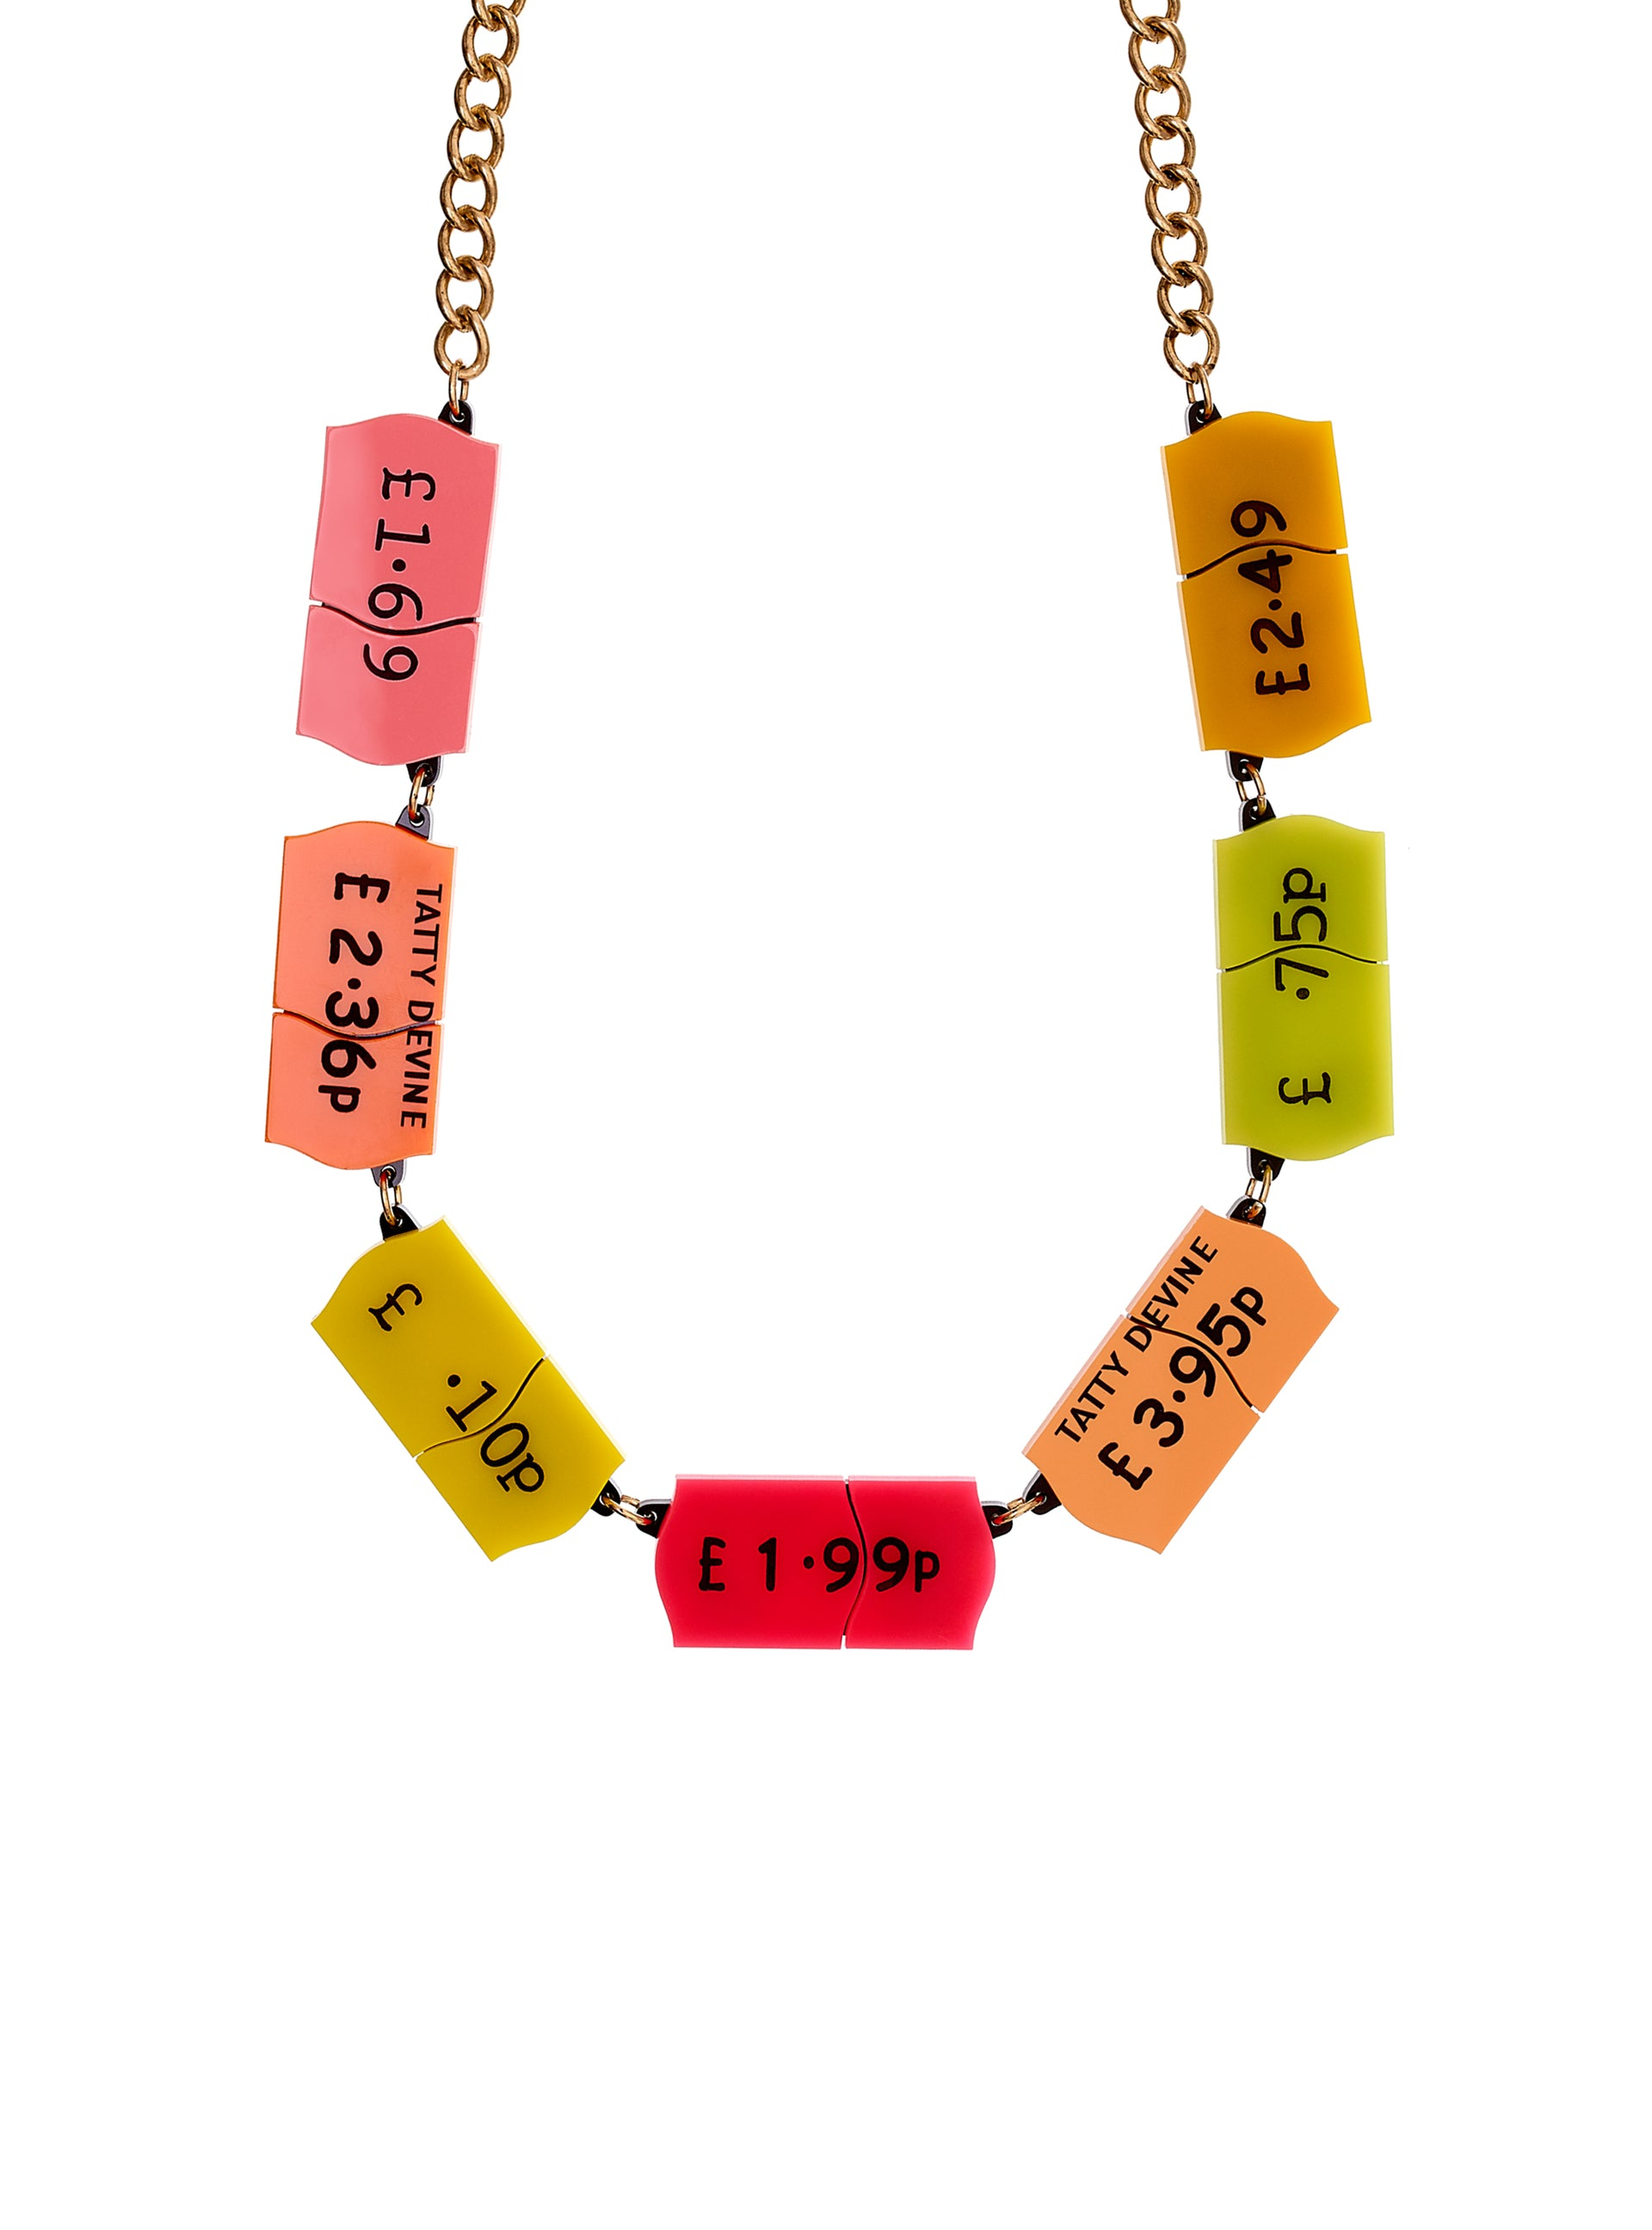 Price Ticket Link Necklace